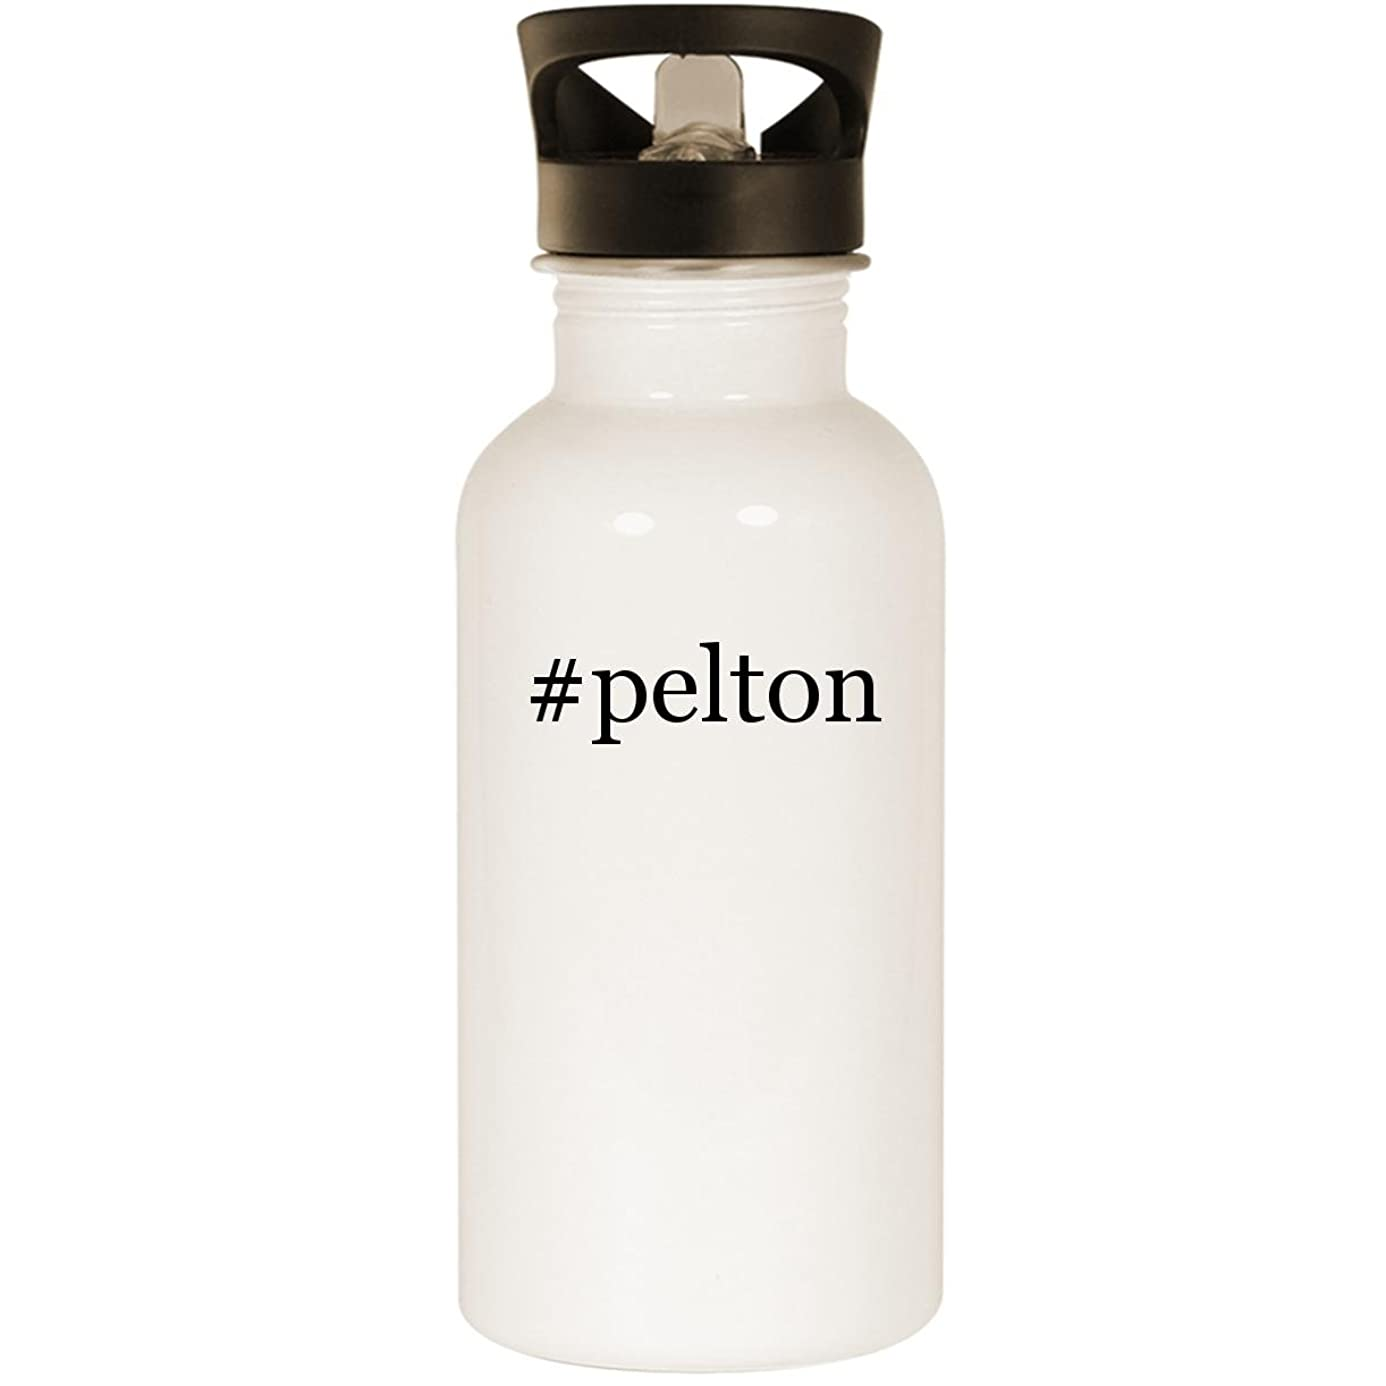 #pelton - Stainless Steel Hashtag 20oz Road Ready Water Bottle, White